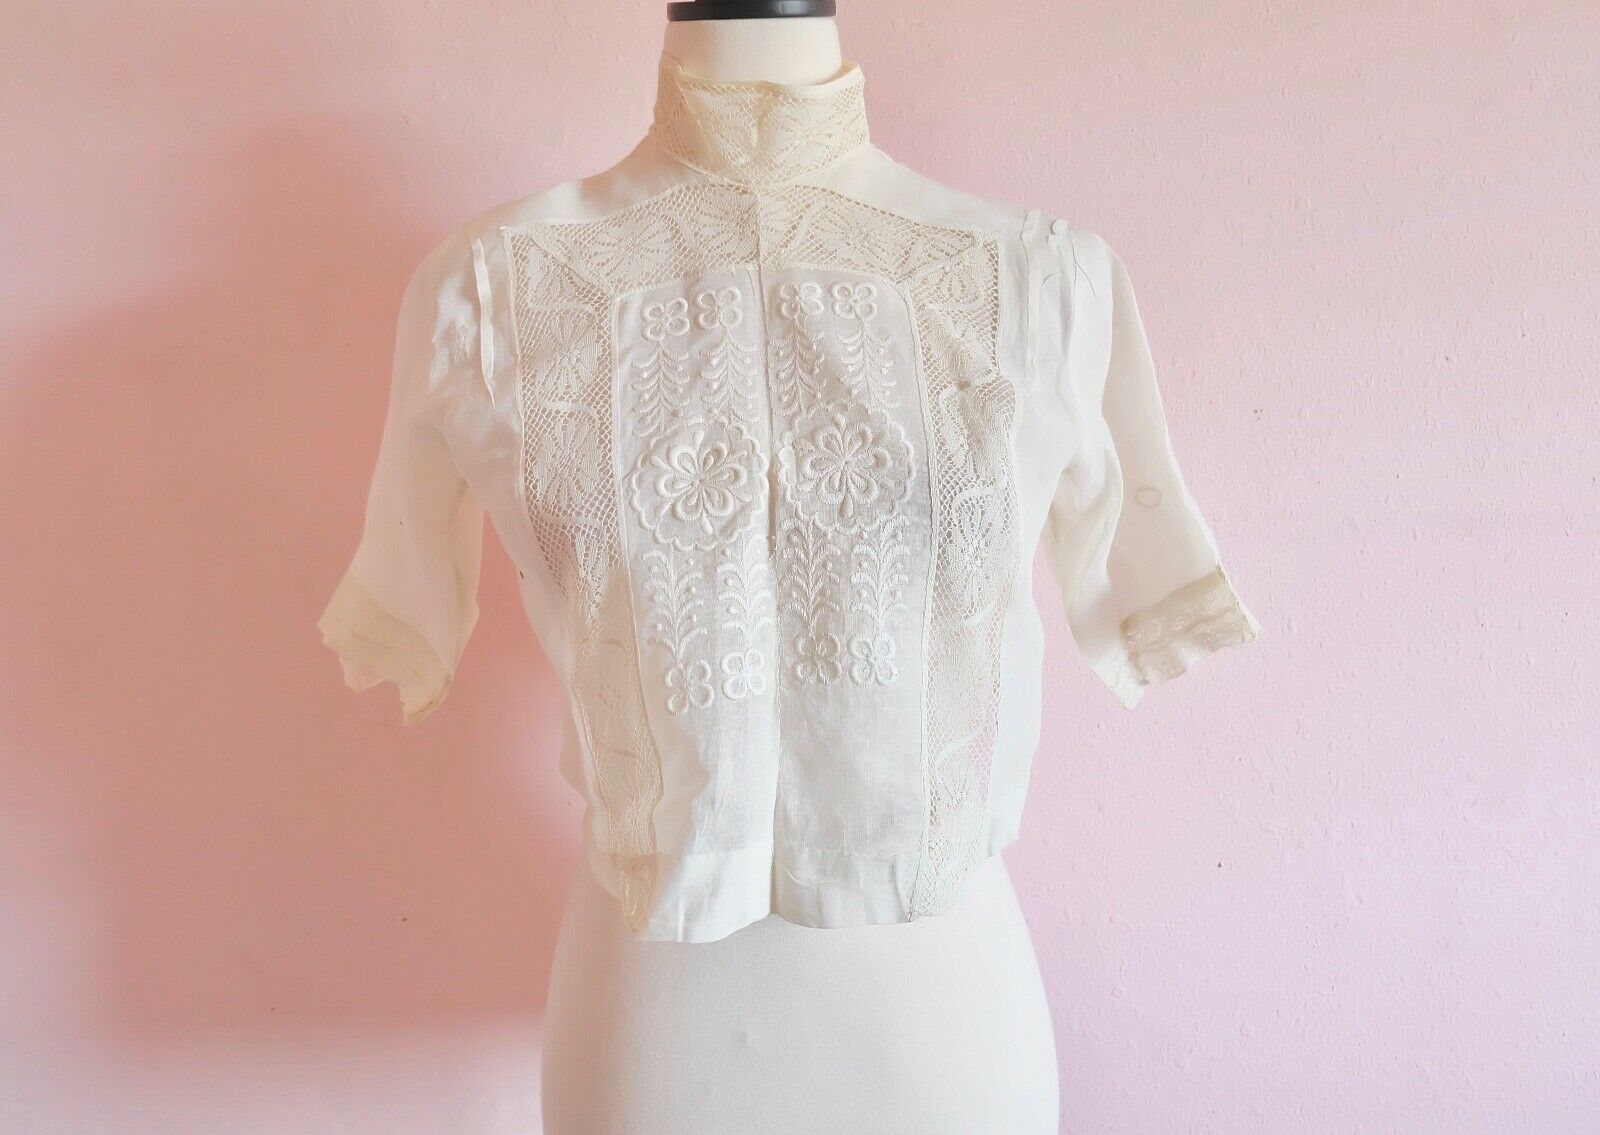 Antique Edwardian Women's Embroidered an Lace Ple… - image 2